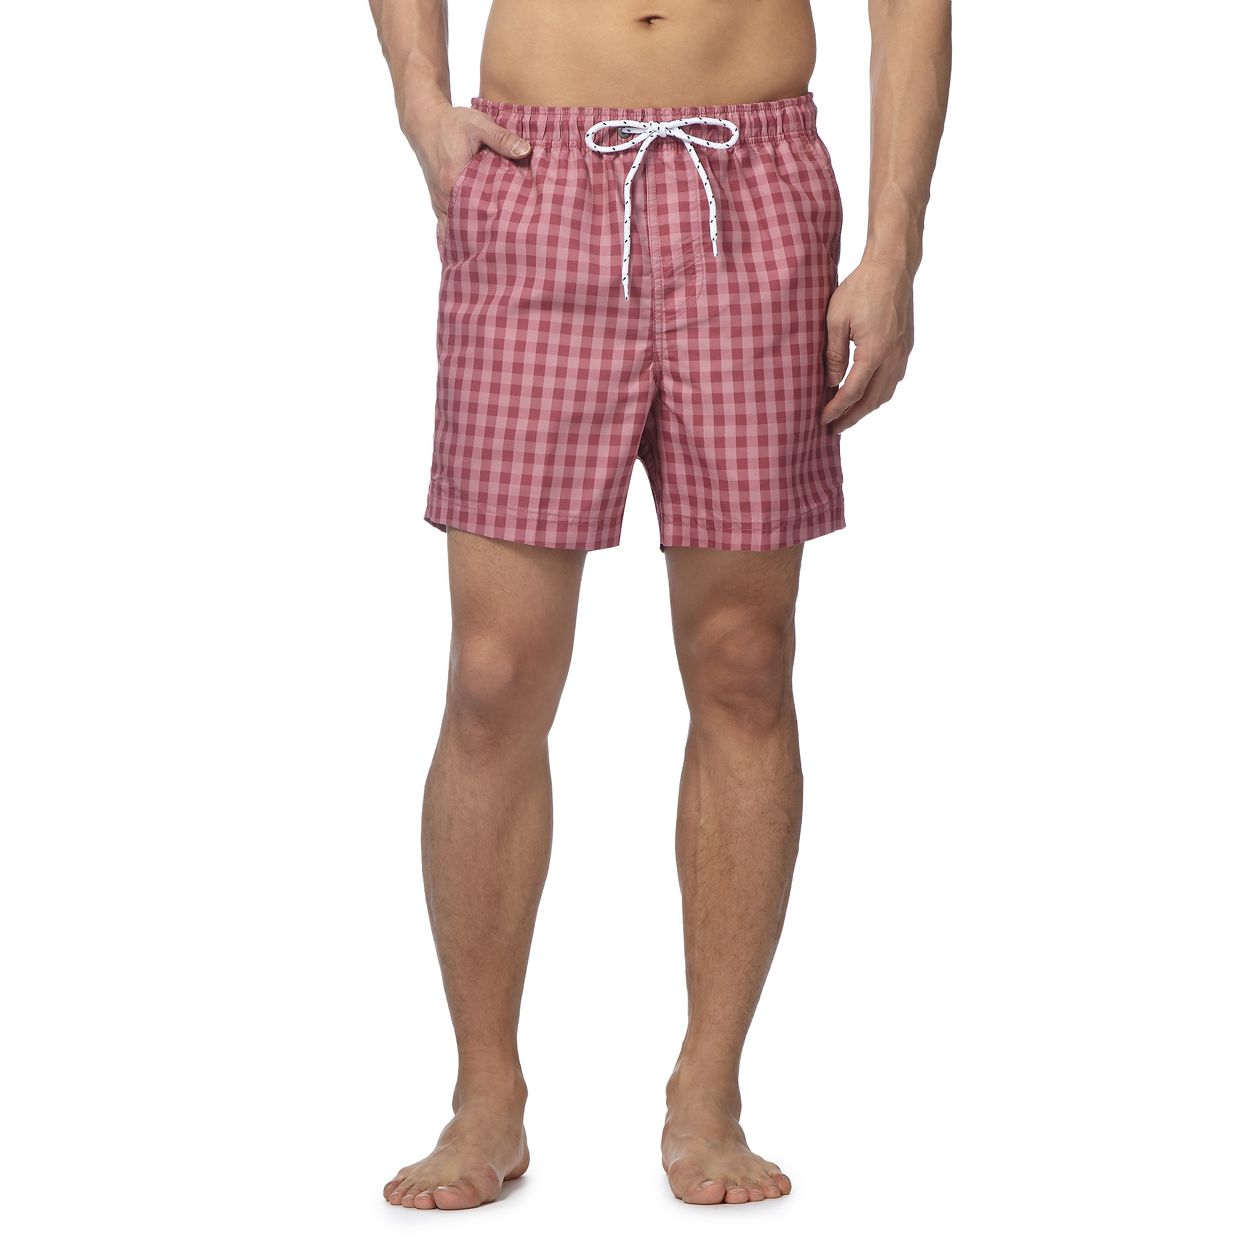 Maine New England Pink gingham check shorts